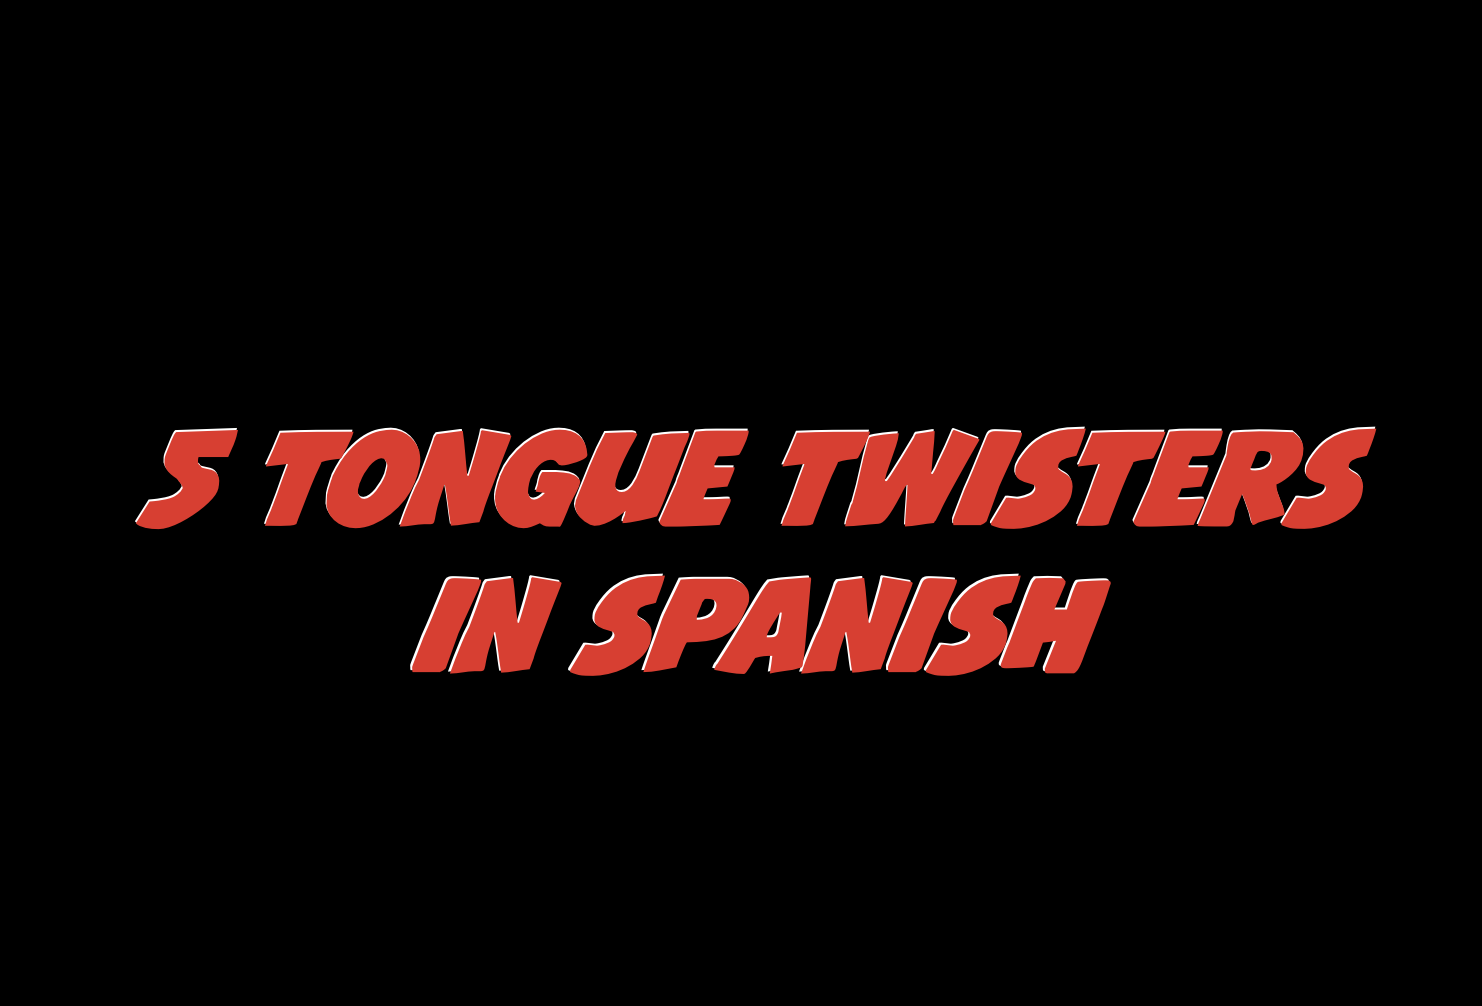 5 Tongue Twisters in Spanish with video